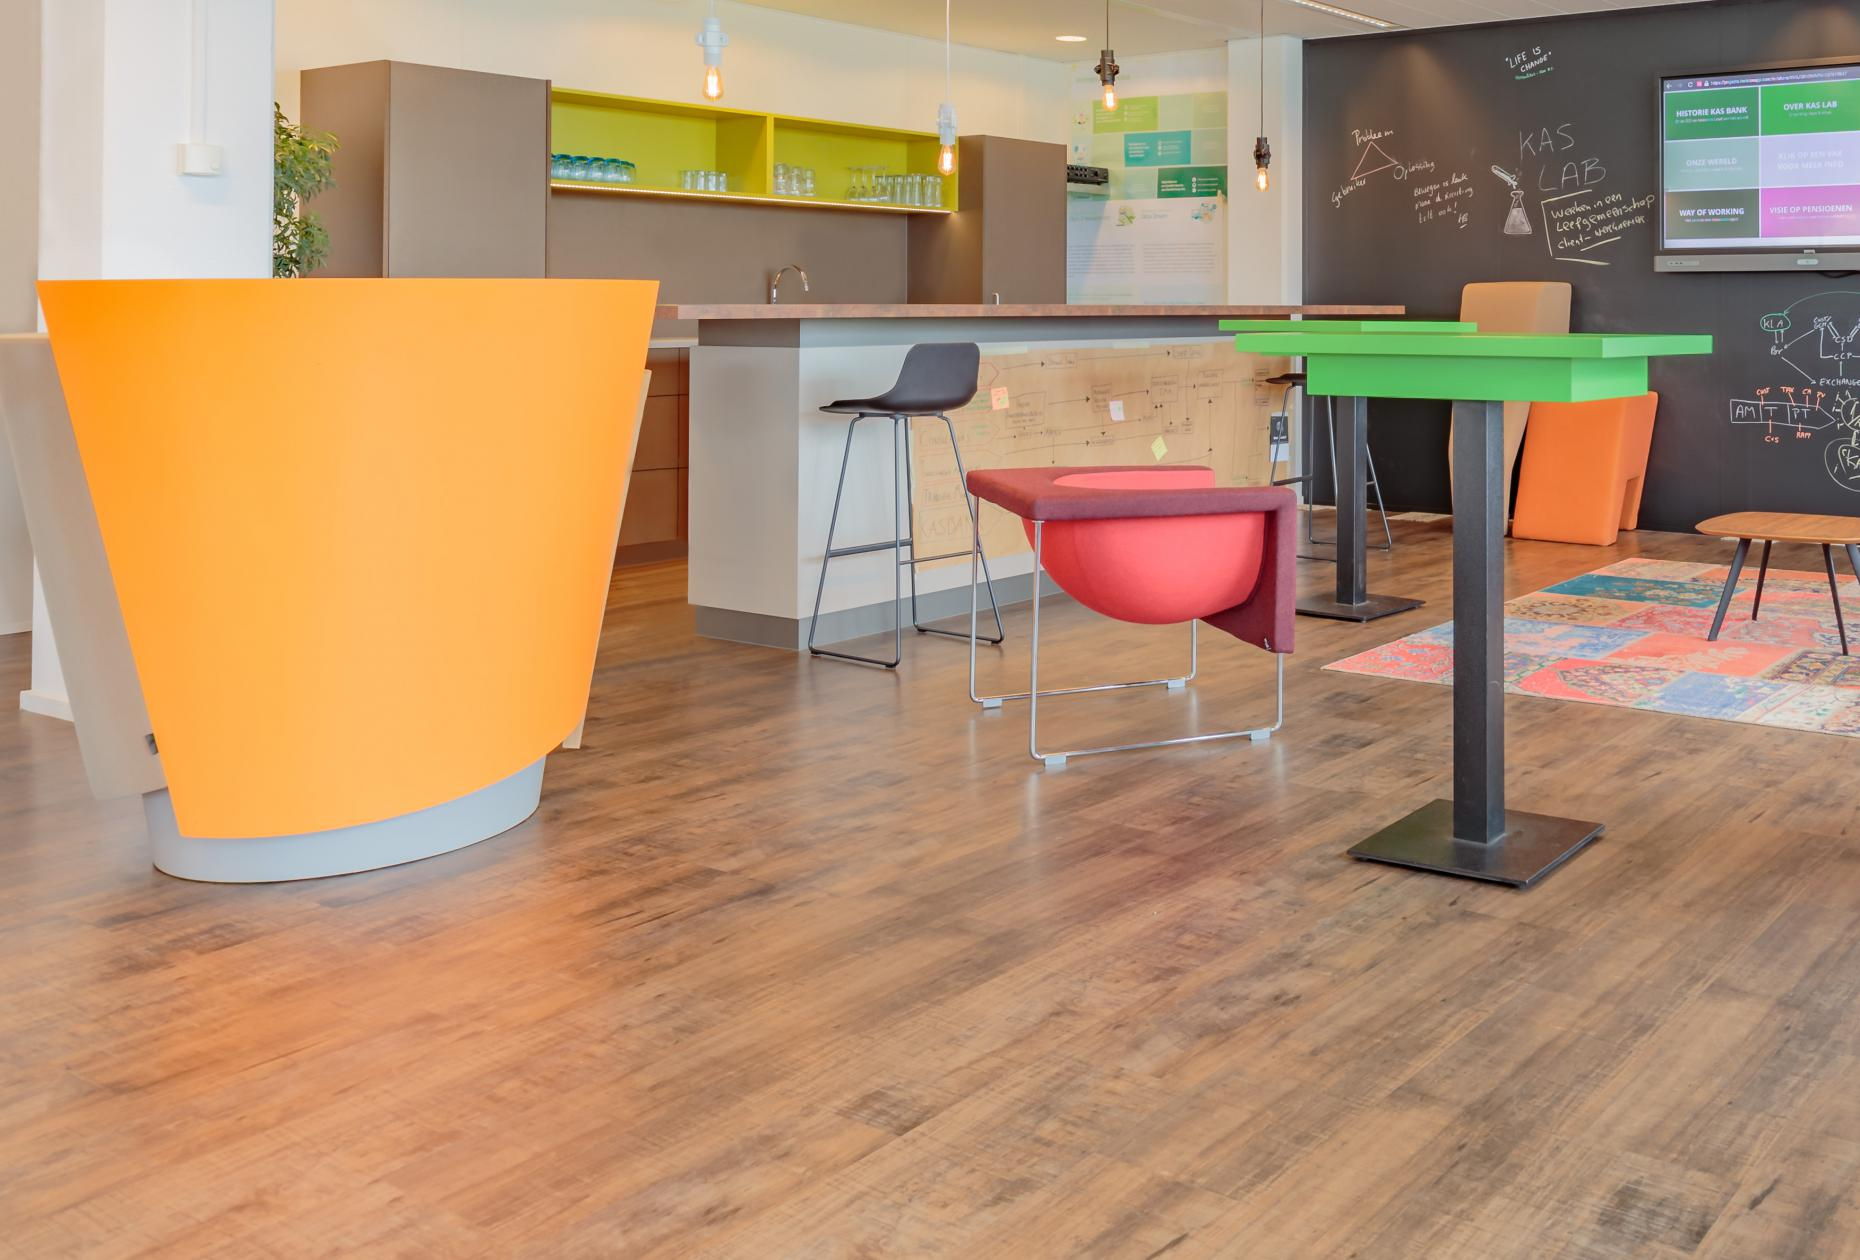 D Box Sessel Prooff Workspace Furniture Design Shaping The Future Of Work